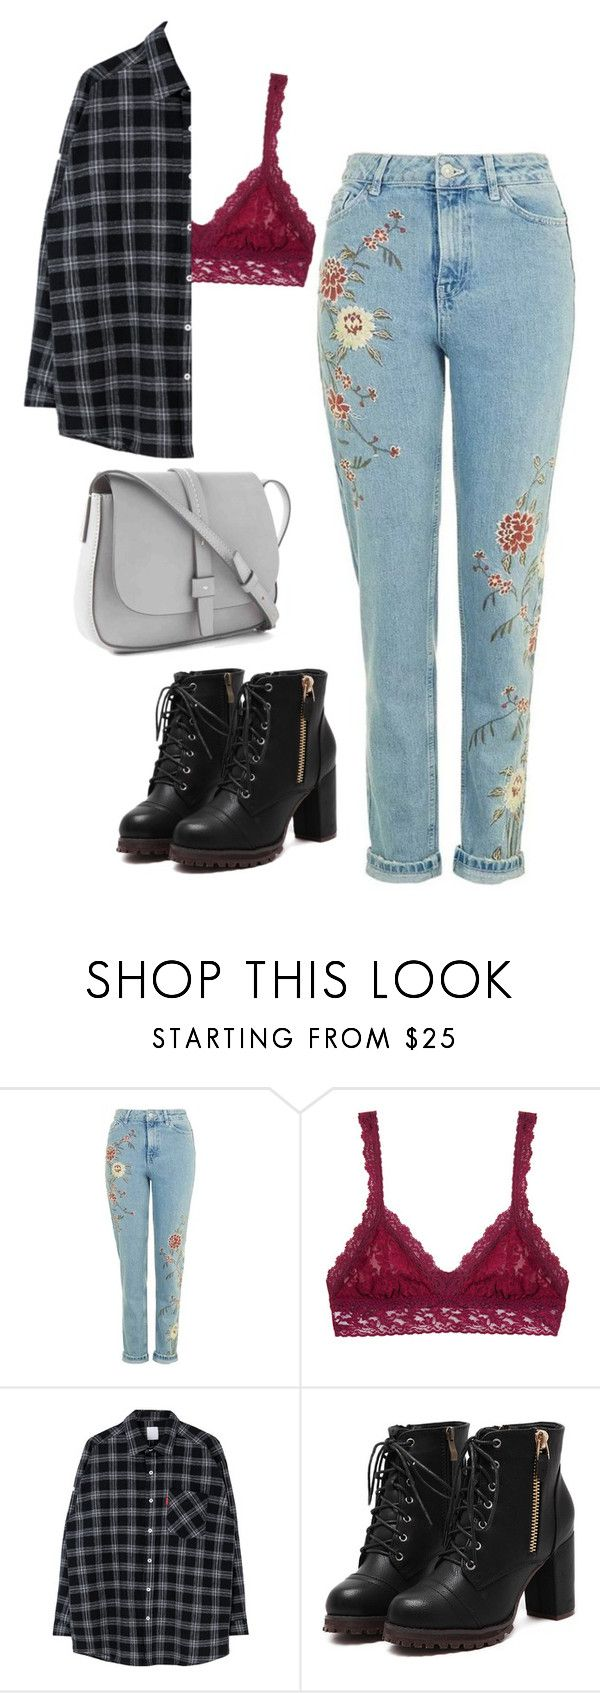 """listening to my new fav song"" by vincentvangoth ❤ liked on Polyvore featuring Hanky Panky and Gap"